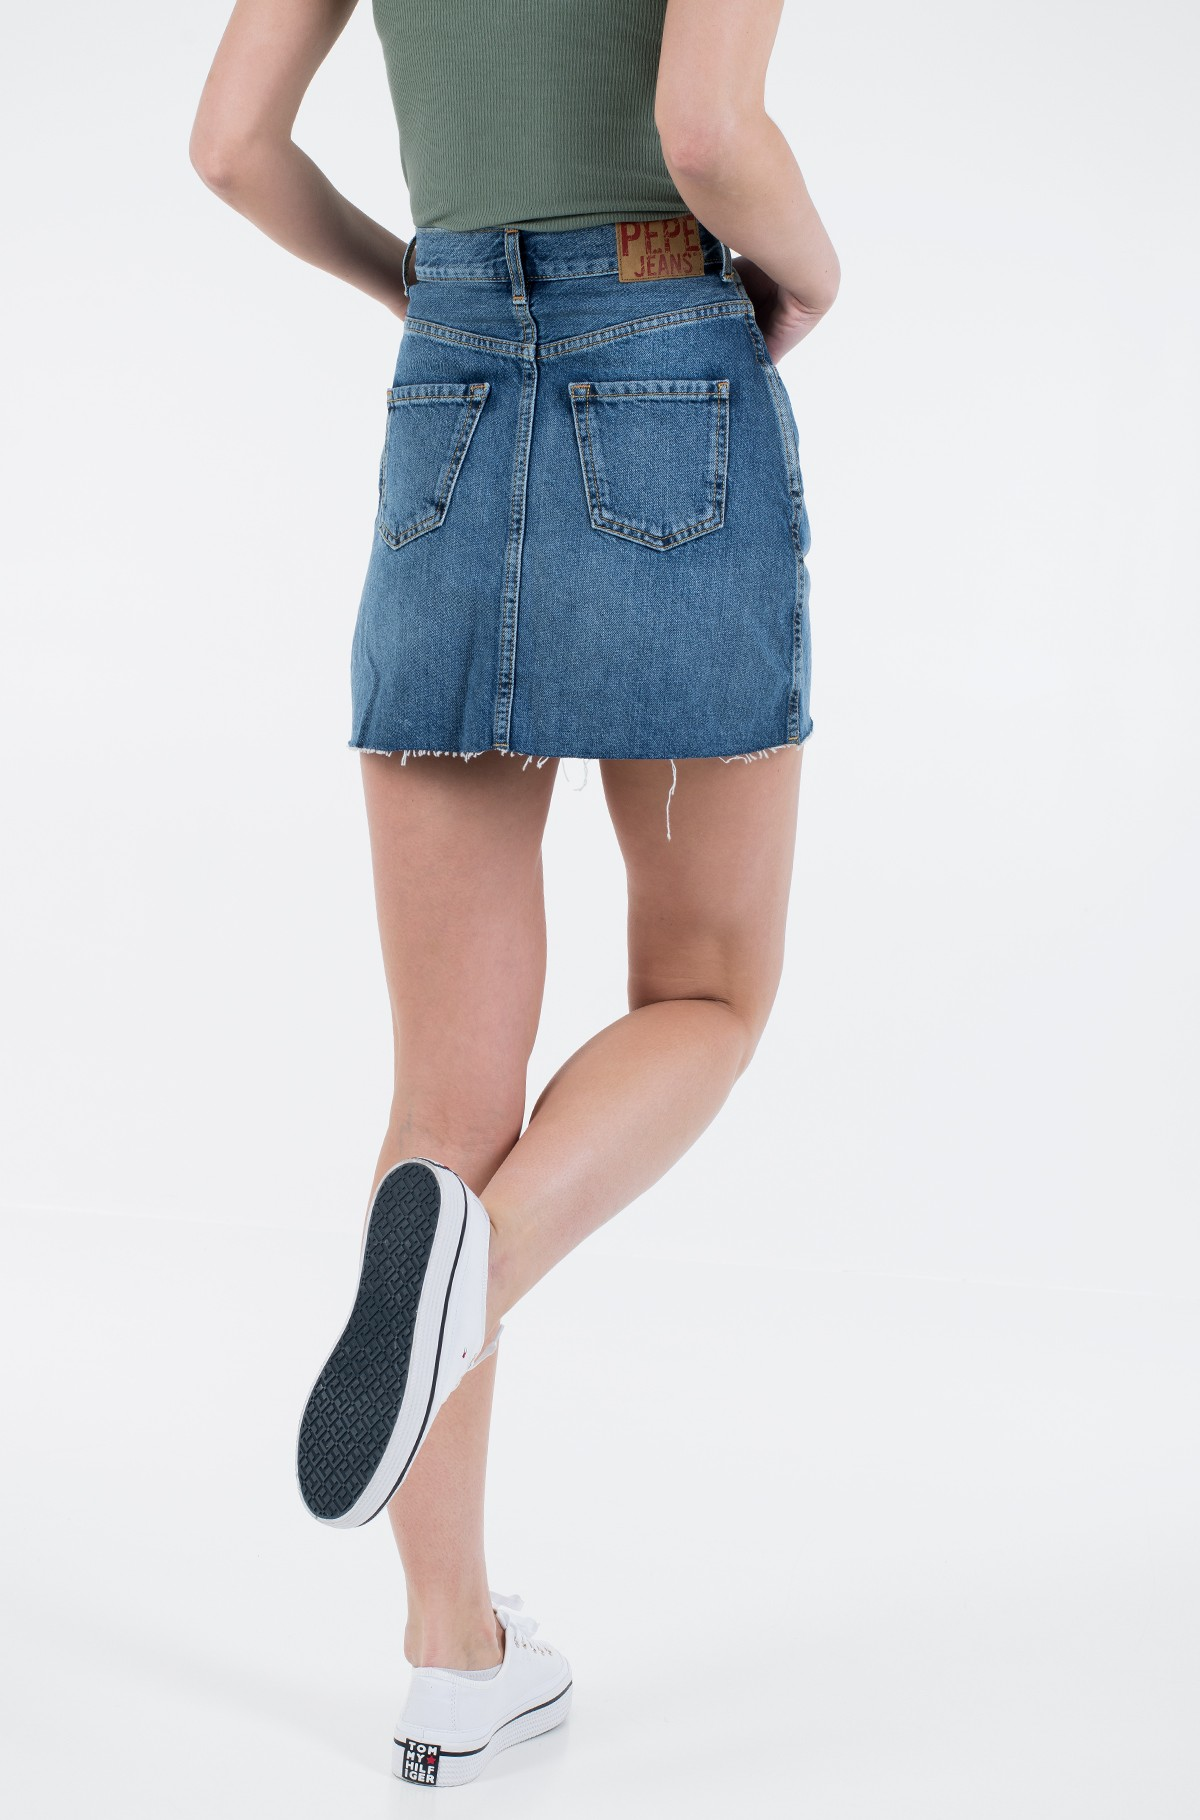 Denim skirt  RACHEL SKIRT/PL900877HD3-full-2